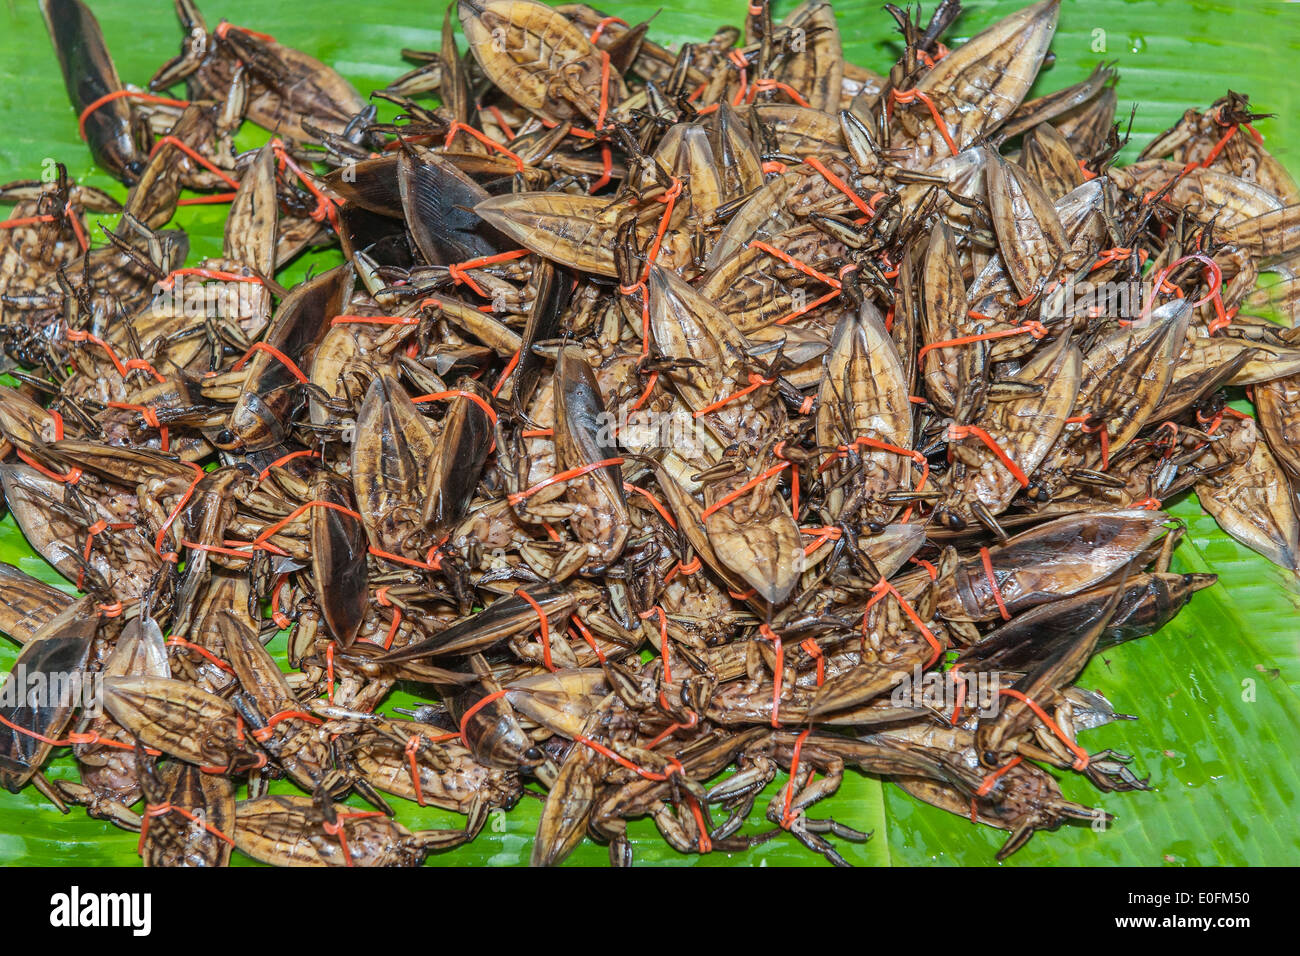 Cooked insects, Market in central Thailand - Stock Image